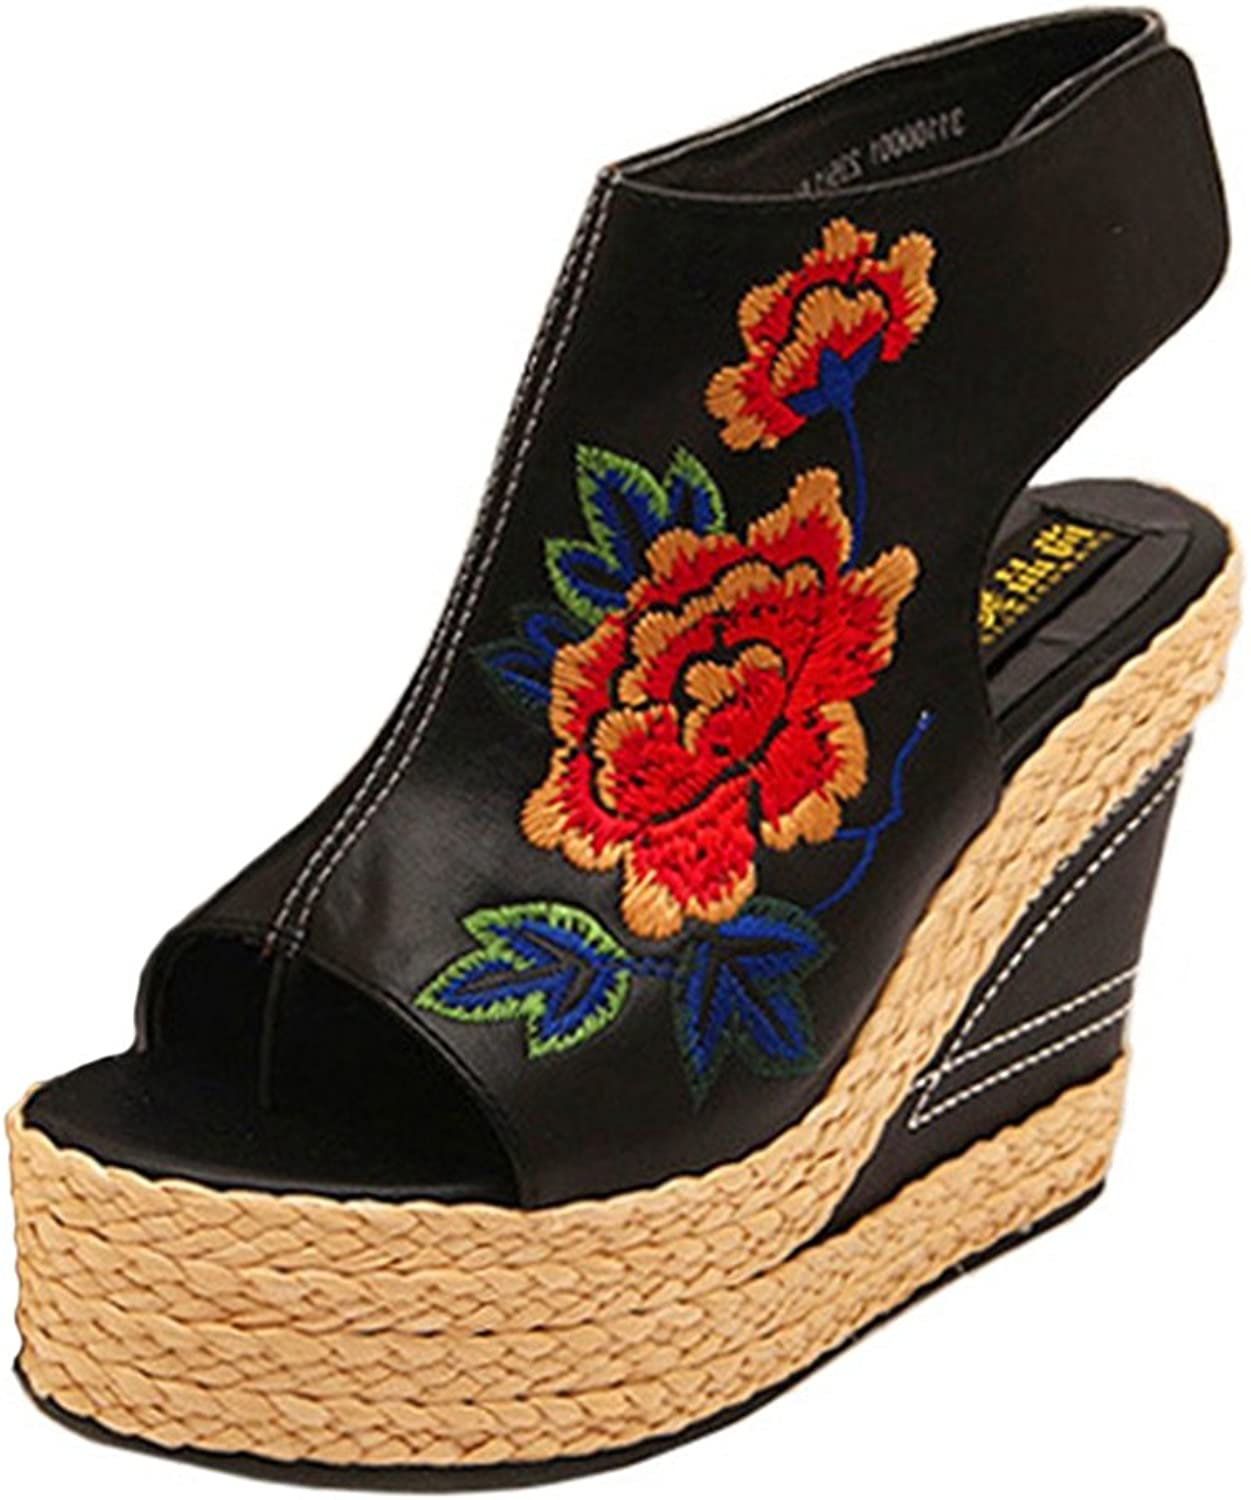 Btrada Women Peep Toe Wedge Sandals Embroidered Retro Platform Sandals